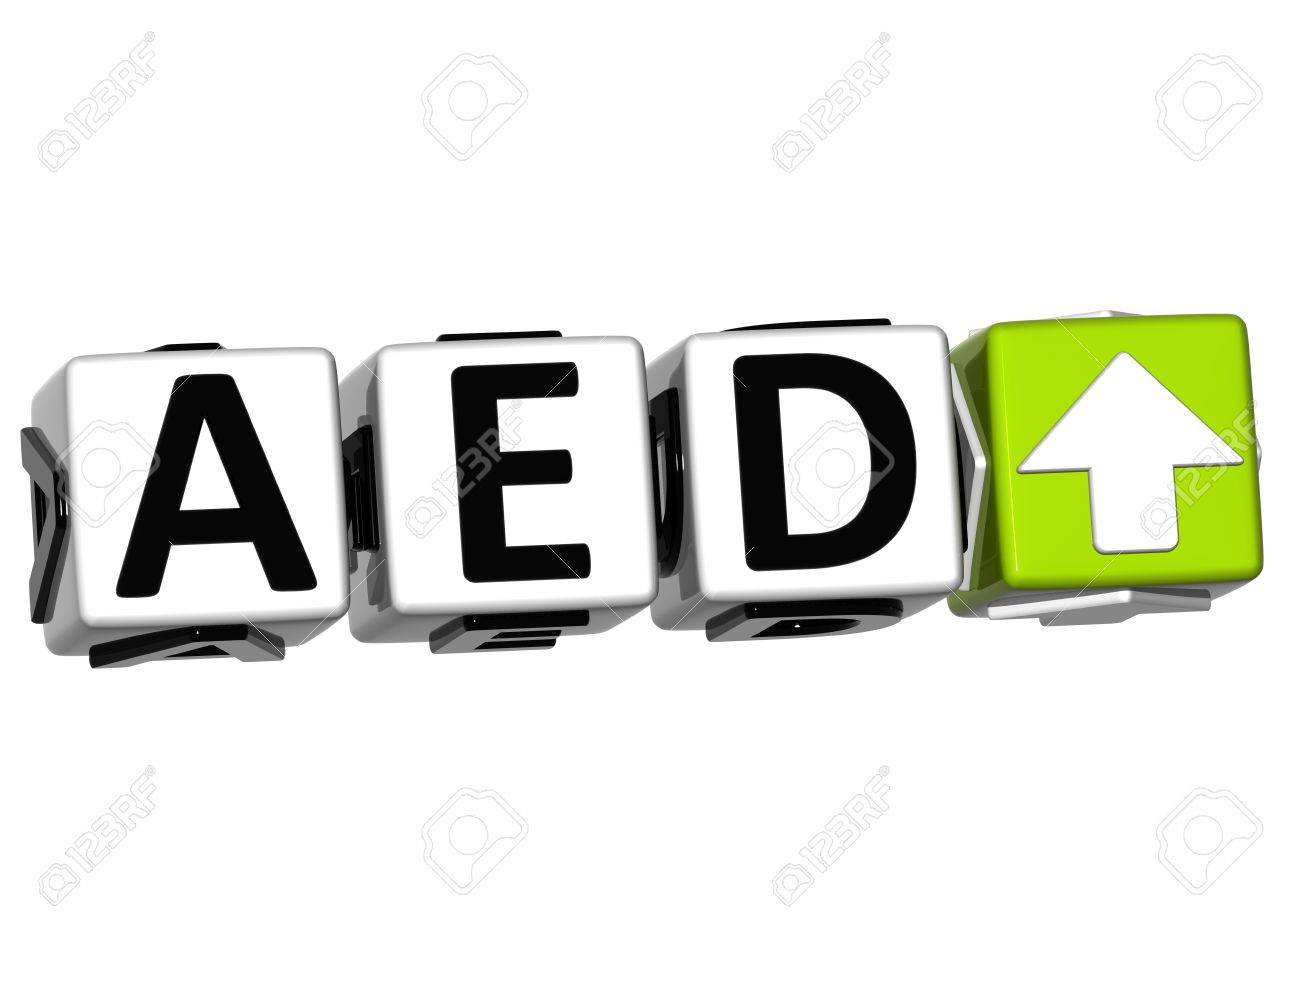 Currency aed rate concept symbol button on white background stock currency aed rate concept symbol button on white background stock photo 12570115 buycottarizona Choice Image